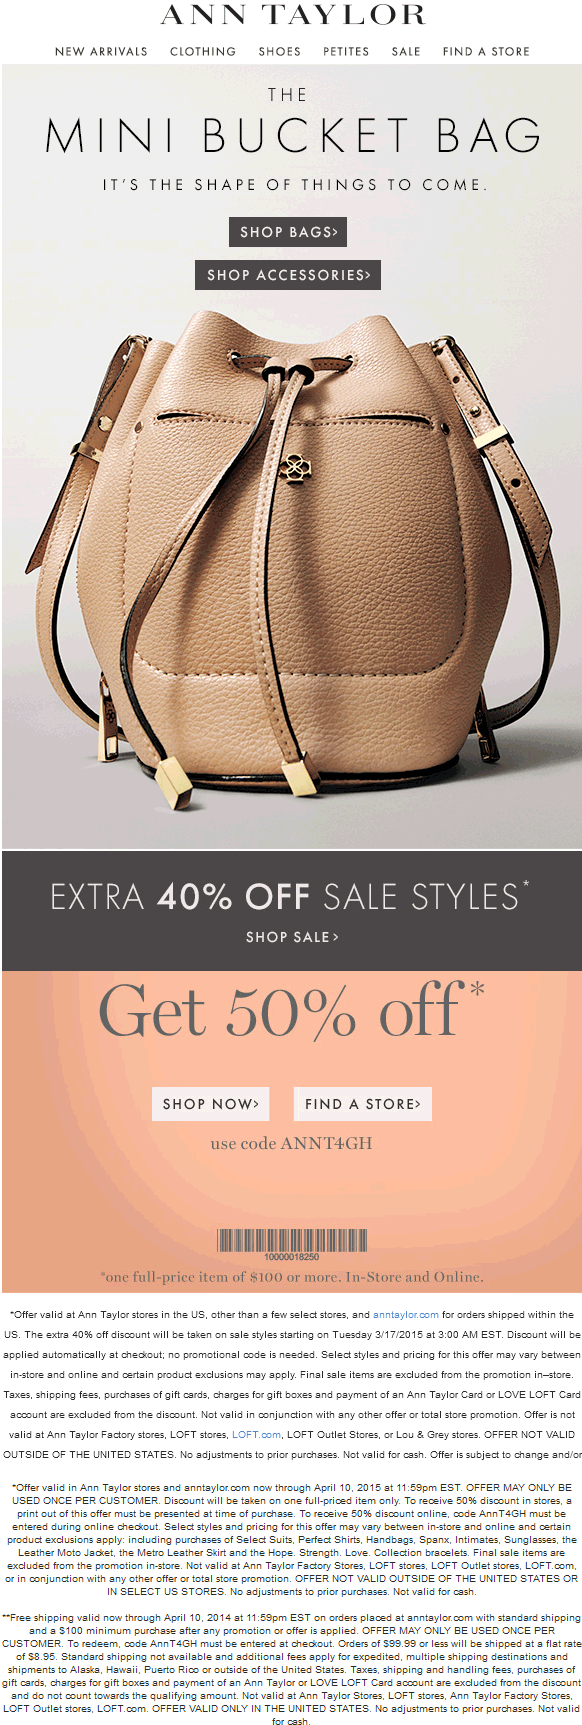 Ann Taylor Coupon February 2017 50% off $100 & more at Ann Taylor, or online via promo code ANNT4GH